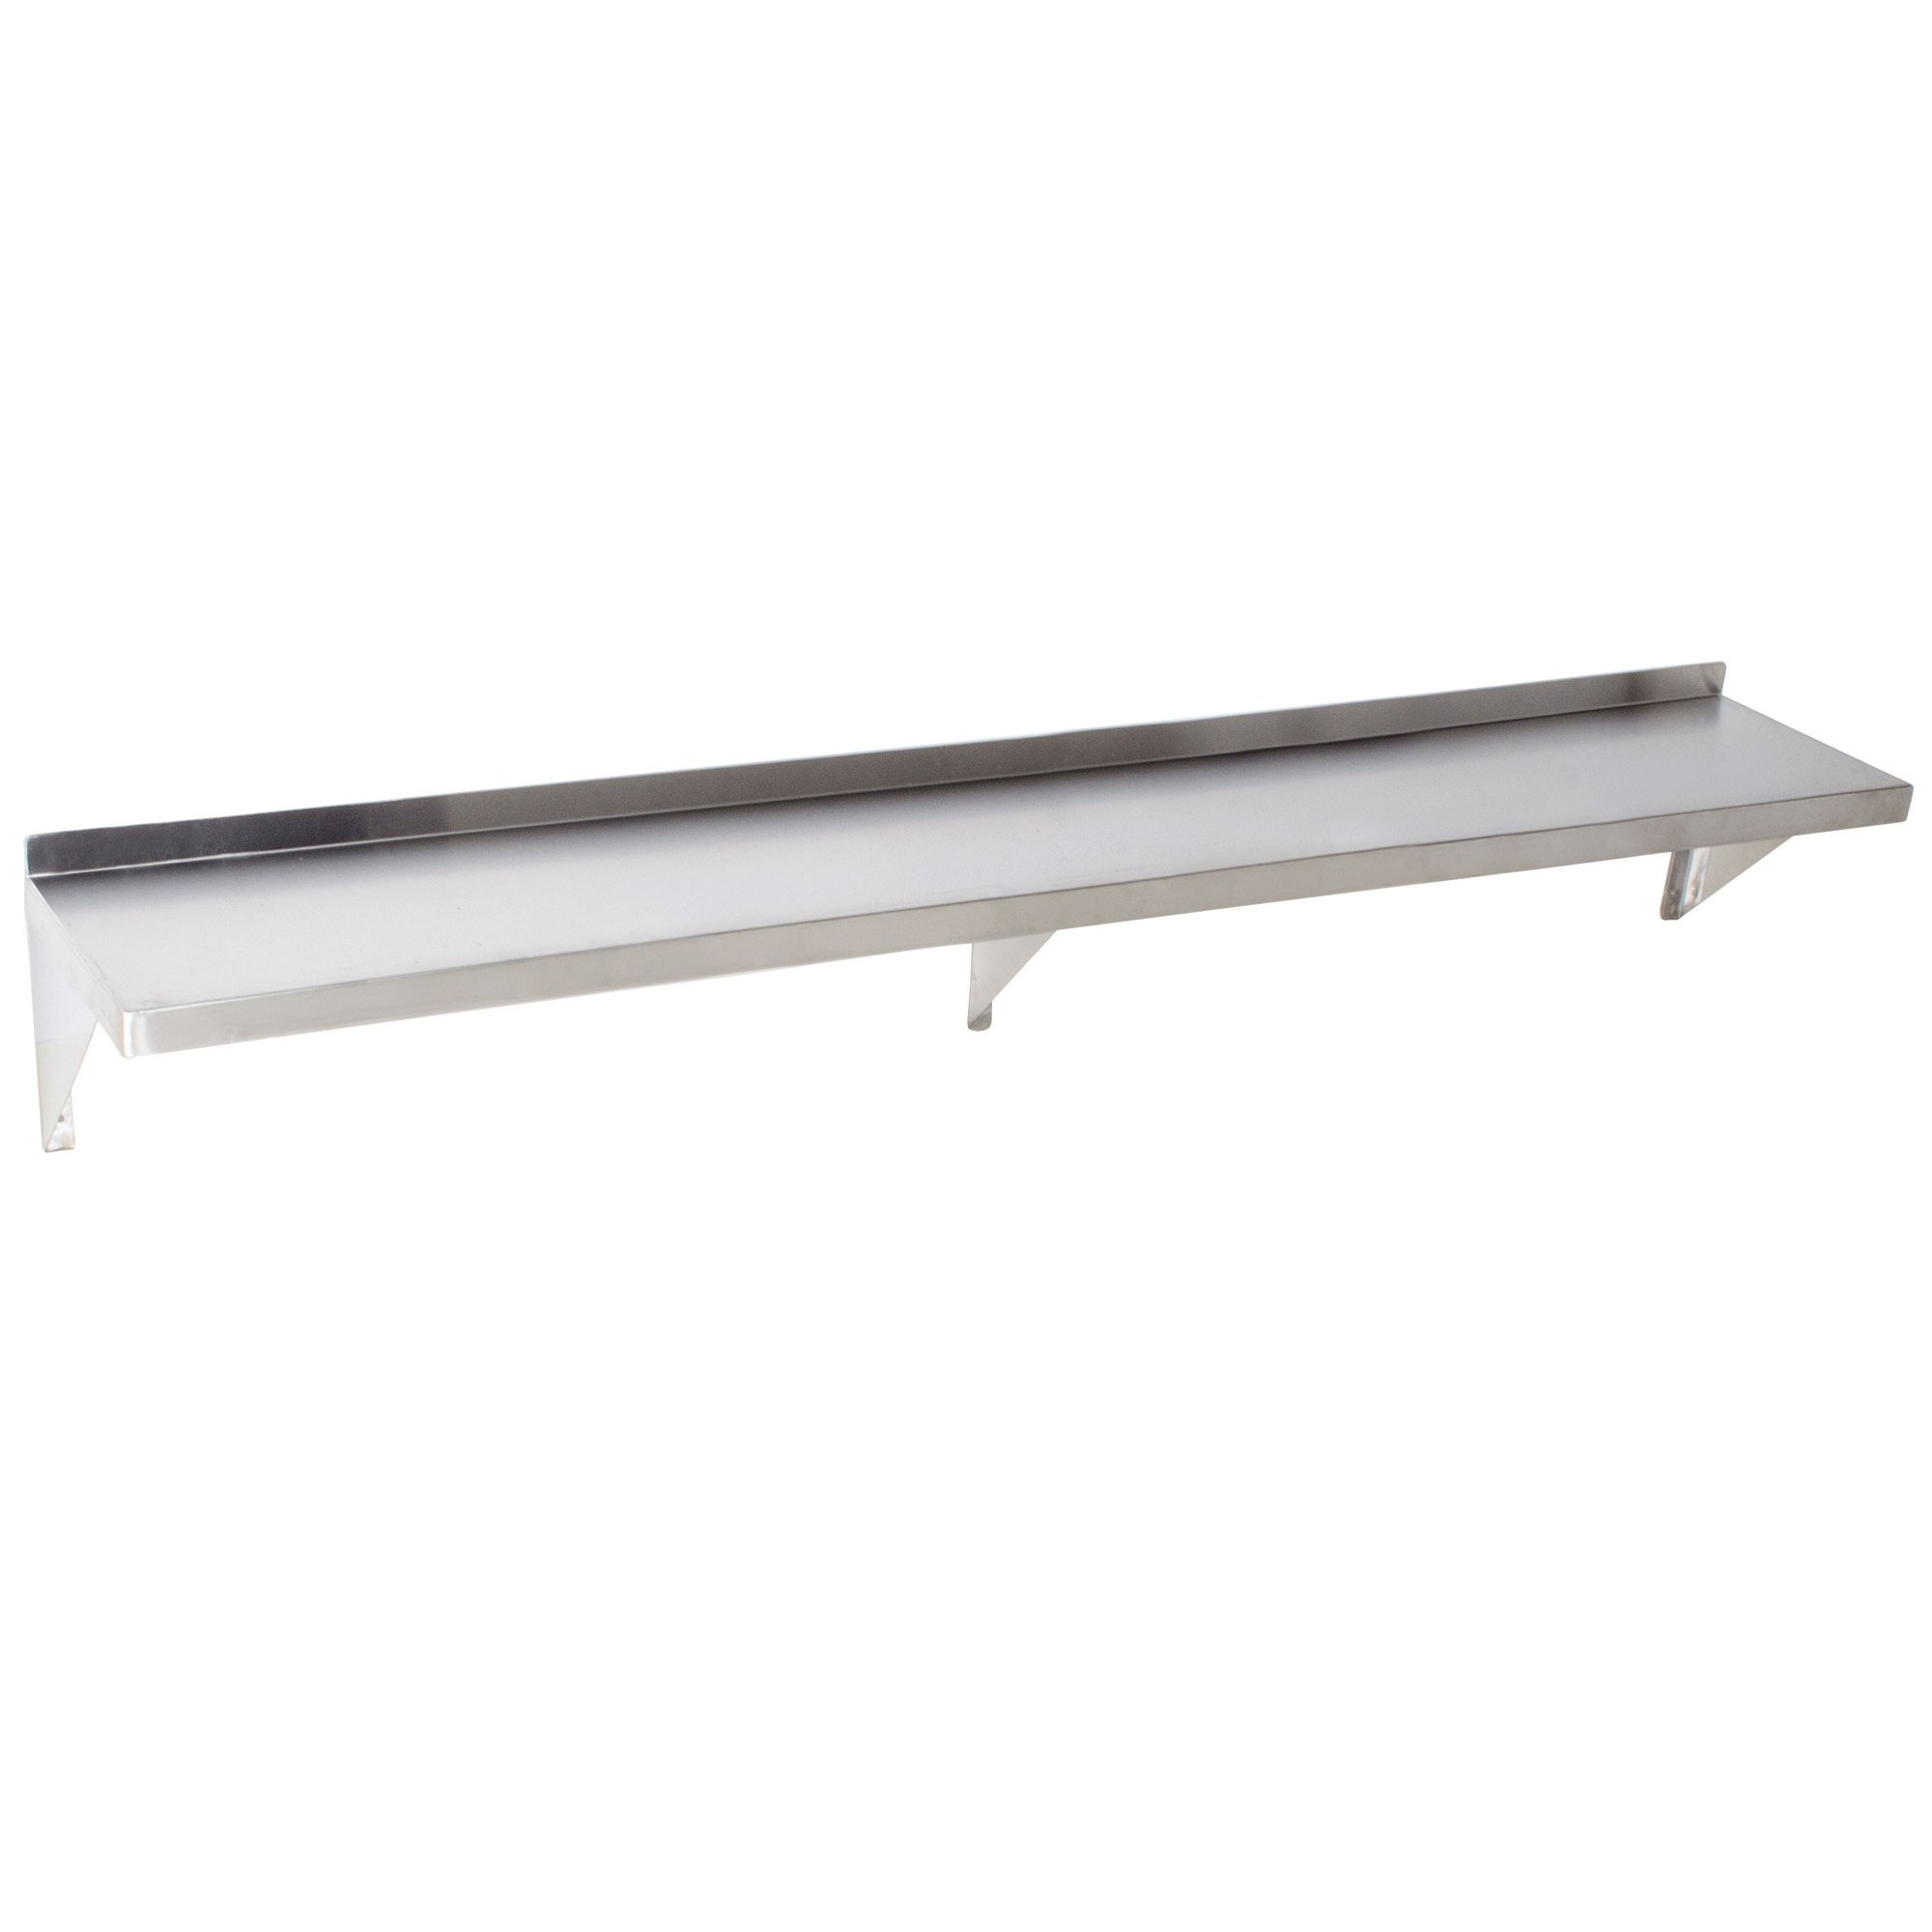 Foodservice Essentials WS-1272 Commercial Wall Mount Shelf, 12-Inch x 72-Inch, Stainless Steel